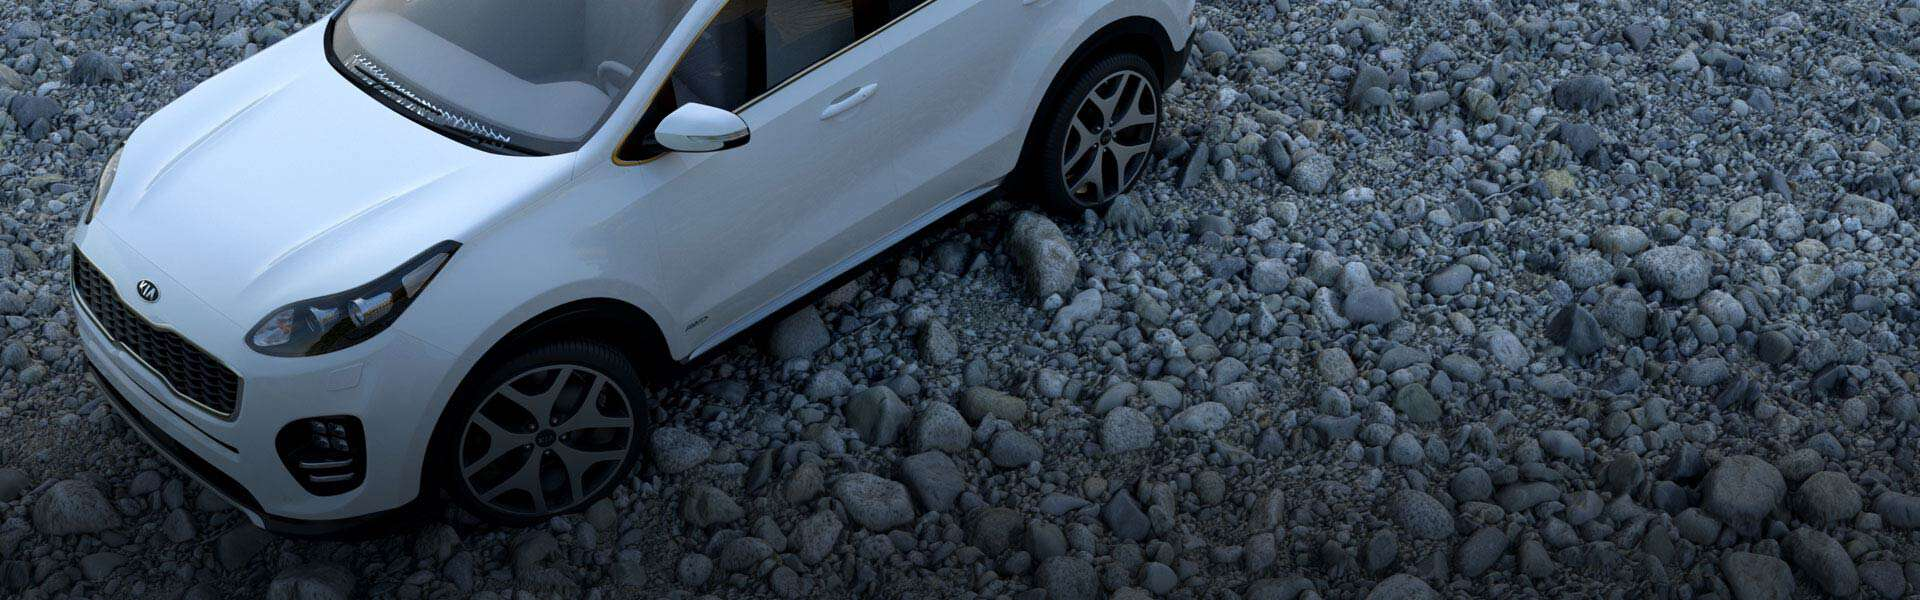 White Car on Pebbled Terrain